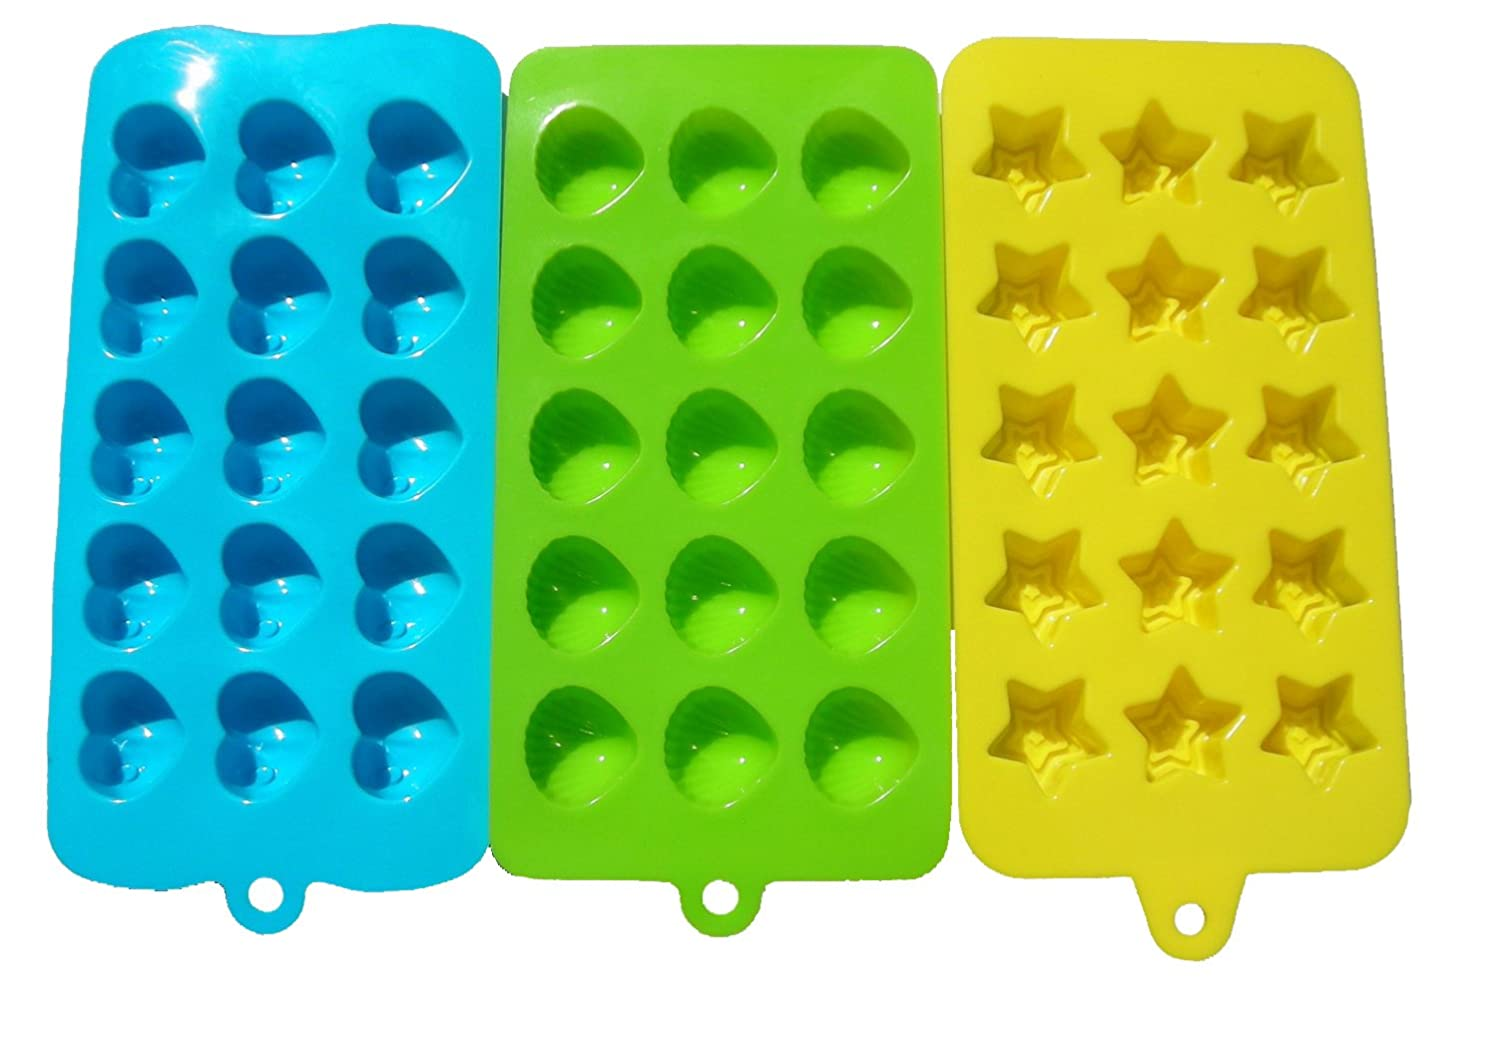 Lepilion Premium Silicone Candy Molds & Ice Cube Trays | Fda Approved Silicone Bpa Free | Chocolate, Candy, Gummy, Jelly, More | Hearts, Stars, Shells Shape by Lepilion